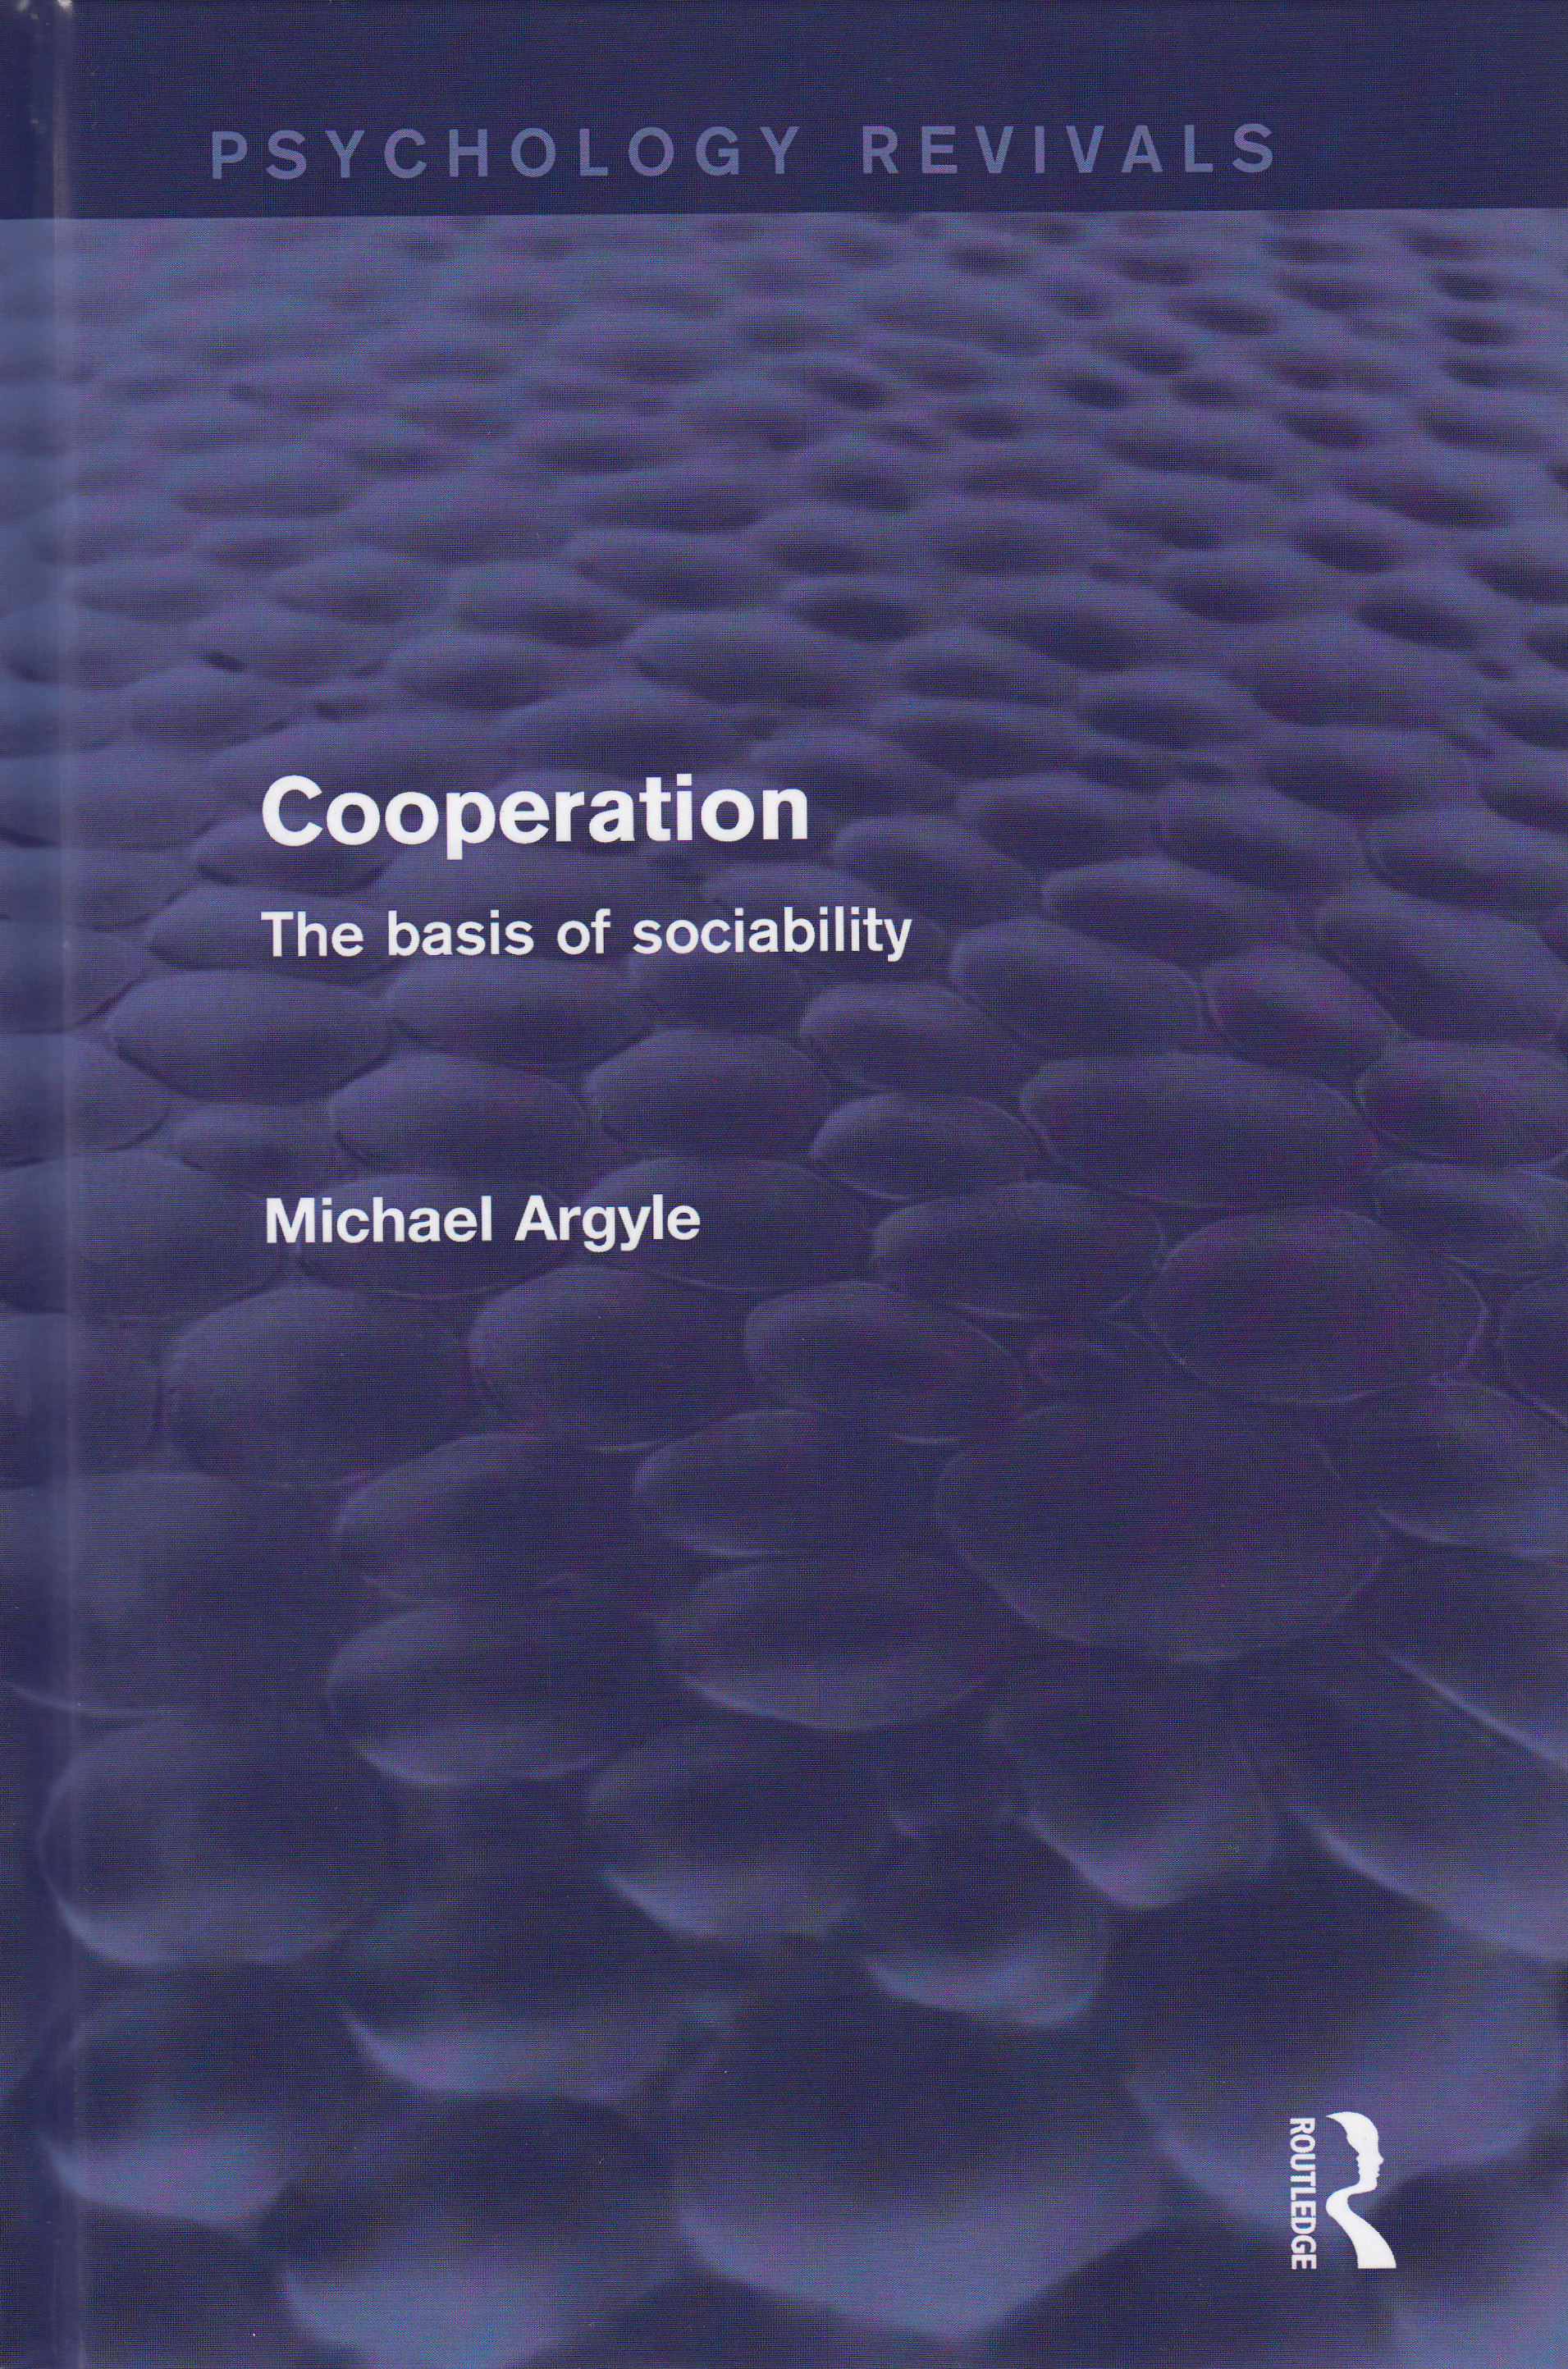 Cooperation, the basis of sociability